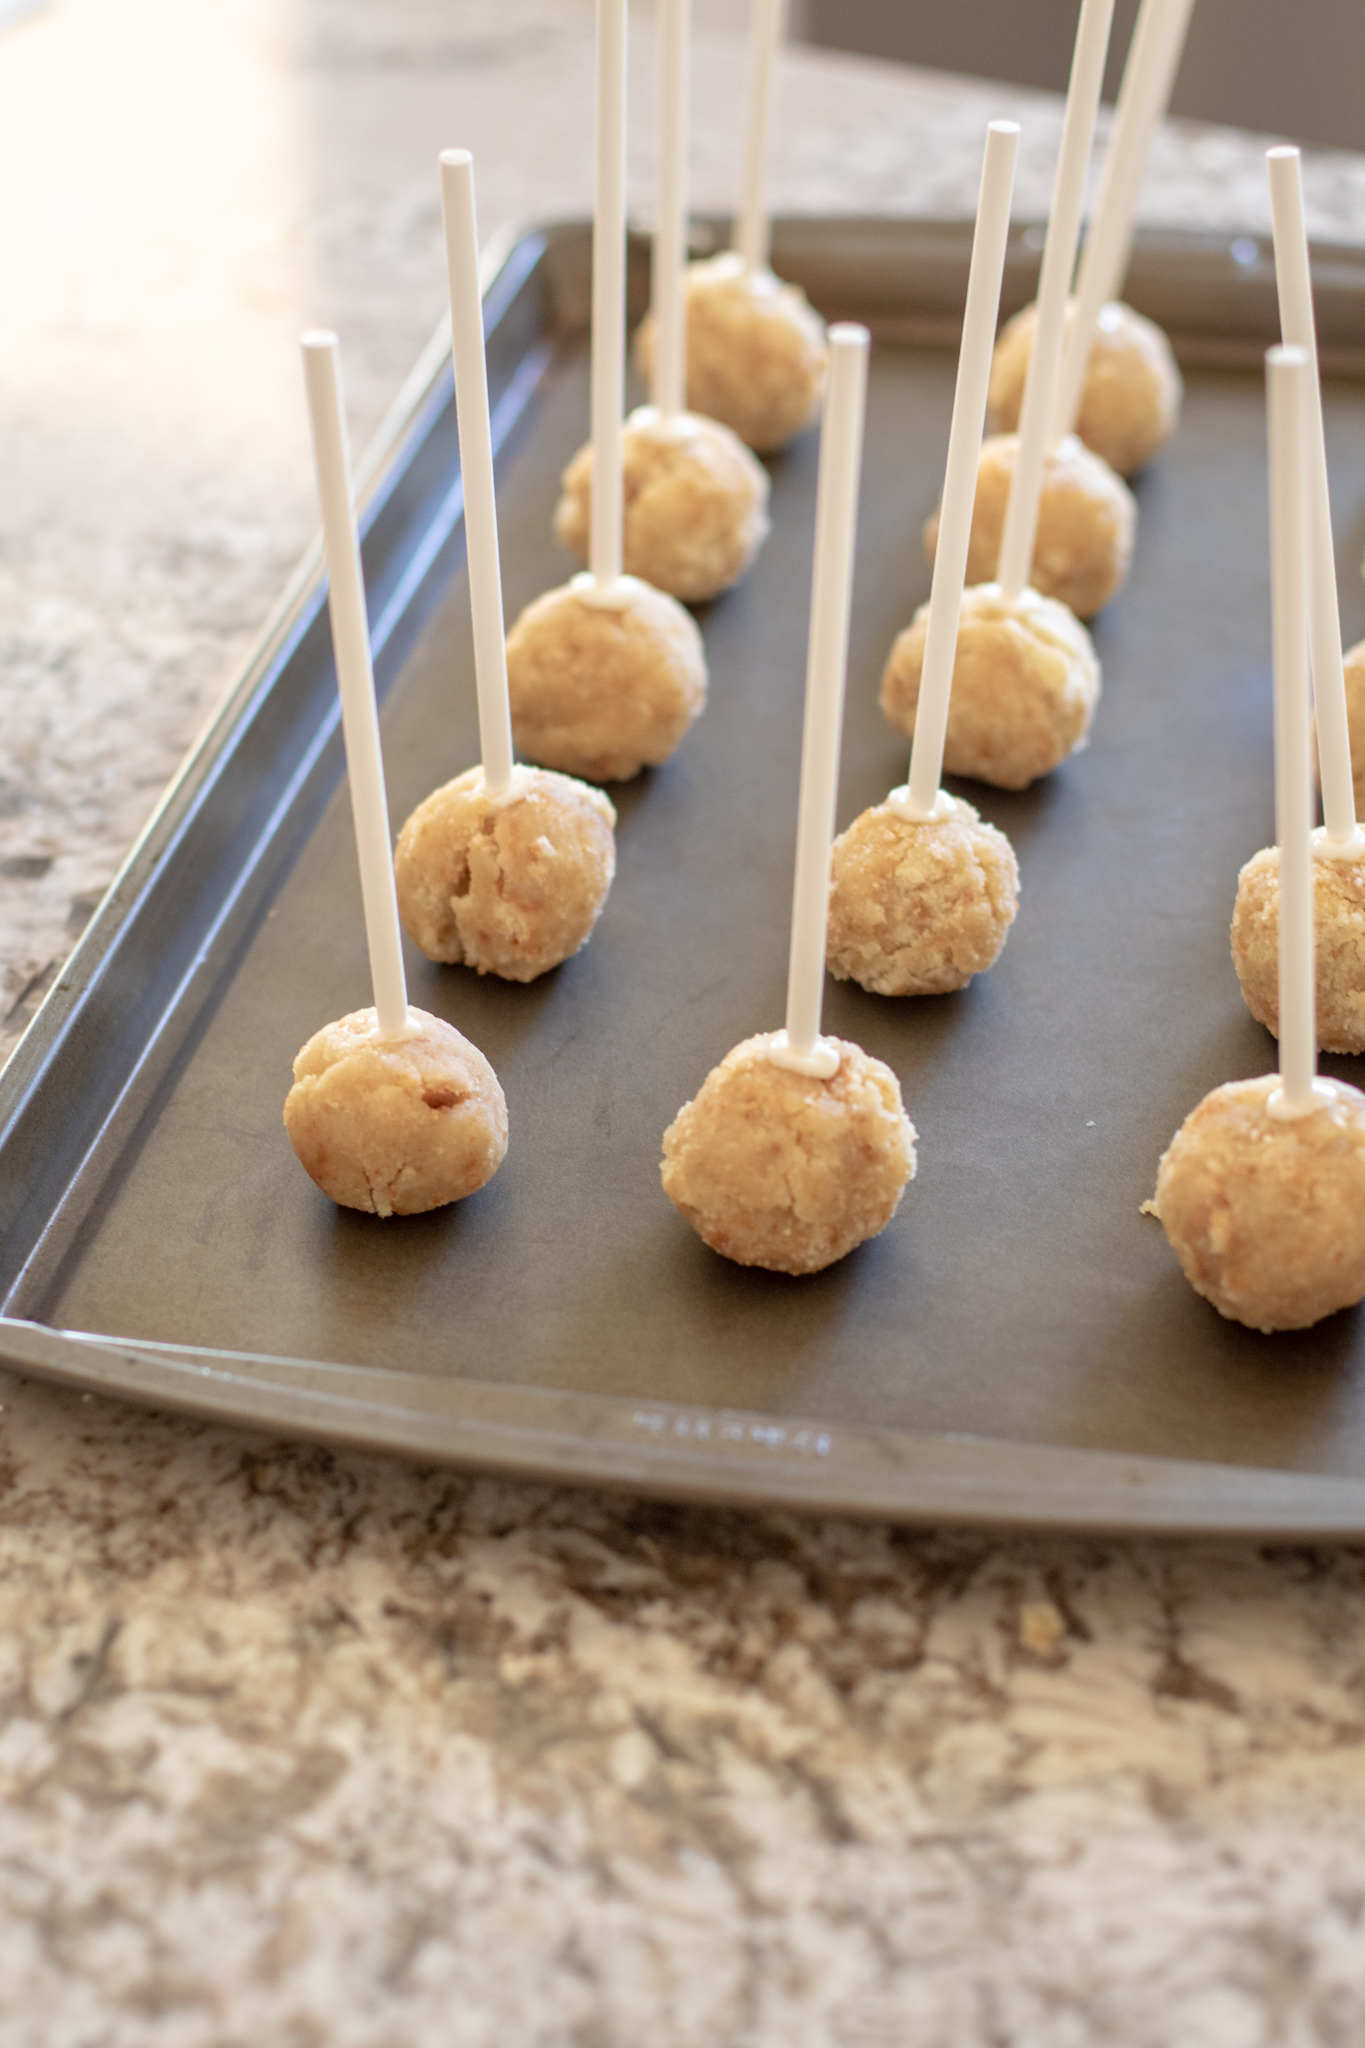 Cake rolled into balls on popsicle sticks sitting on a cookie sheet.